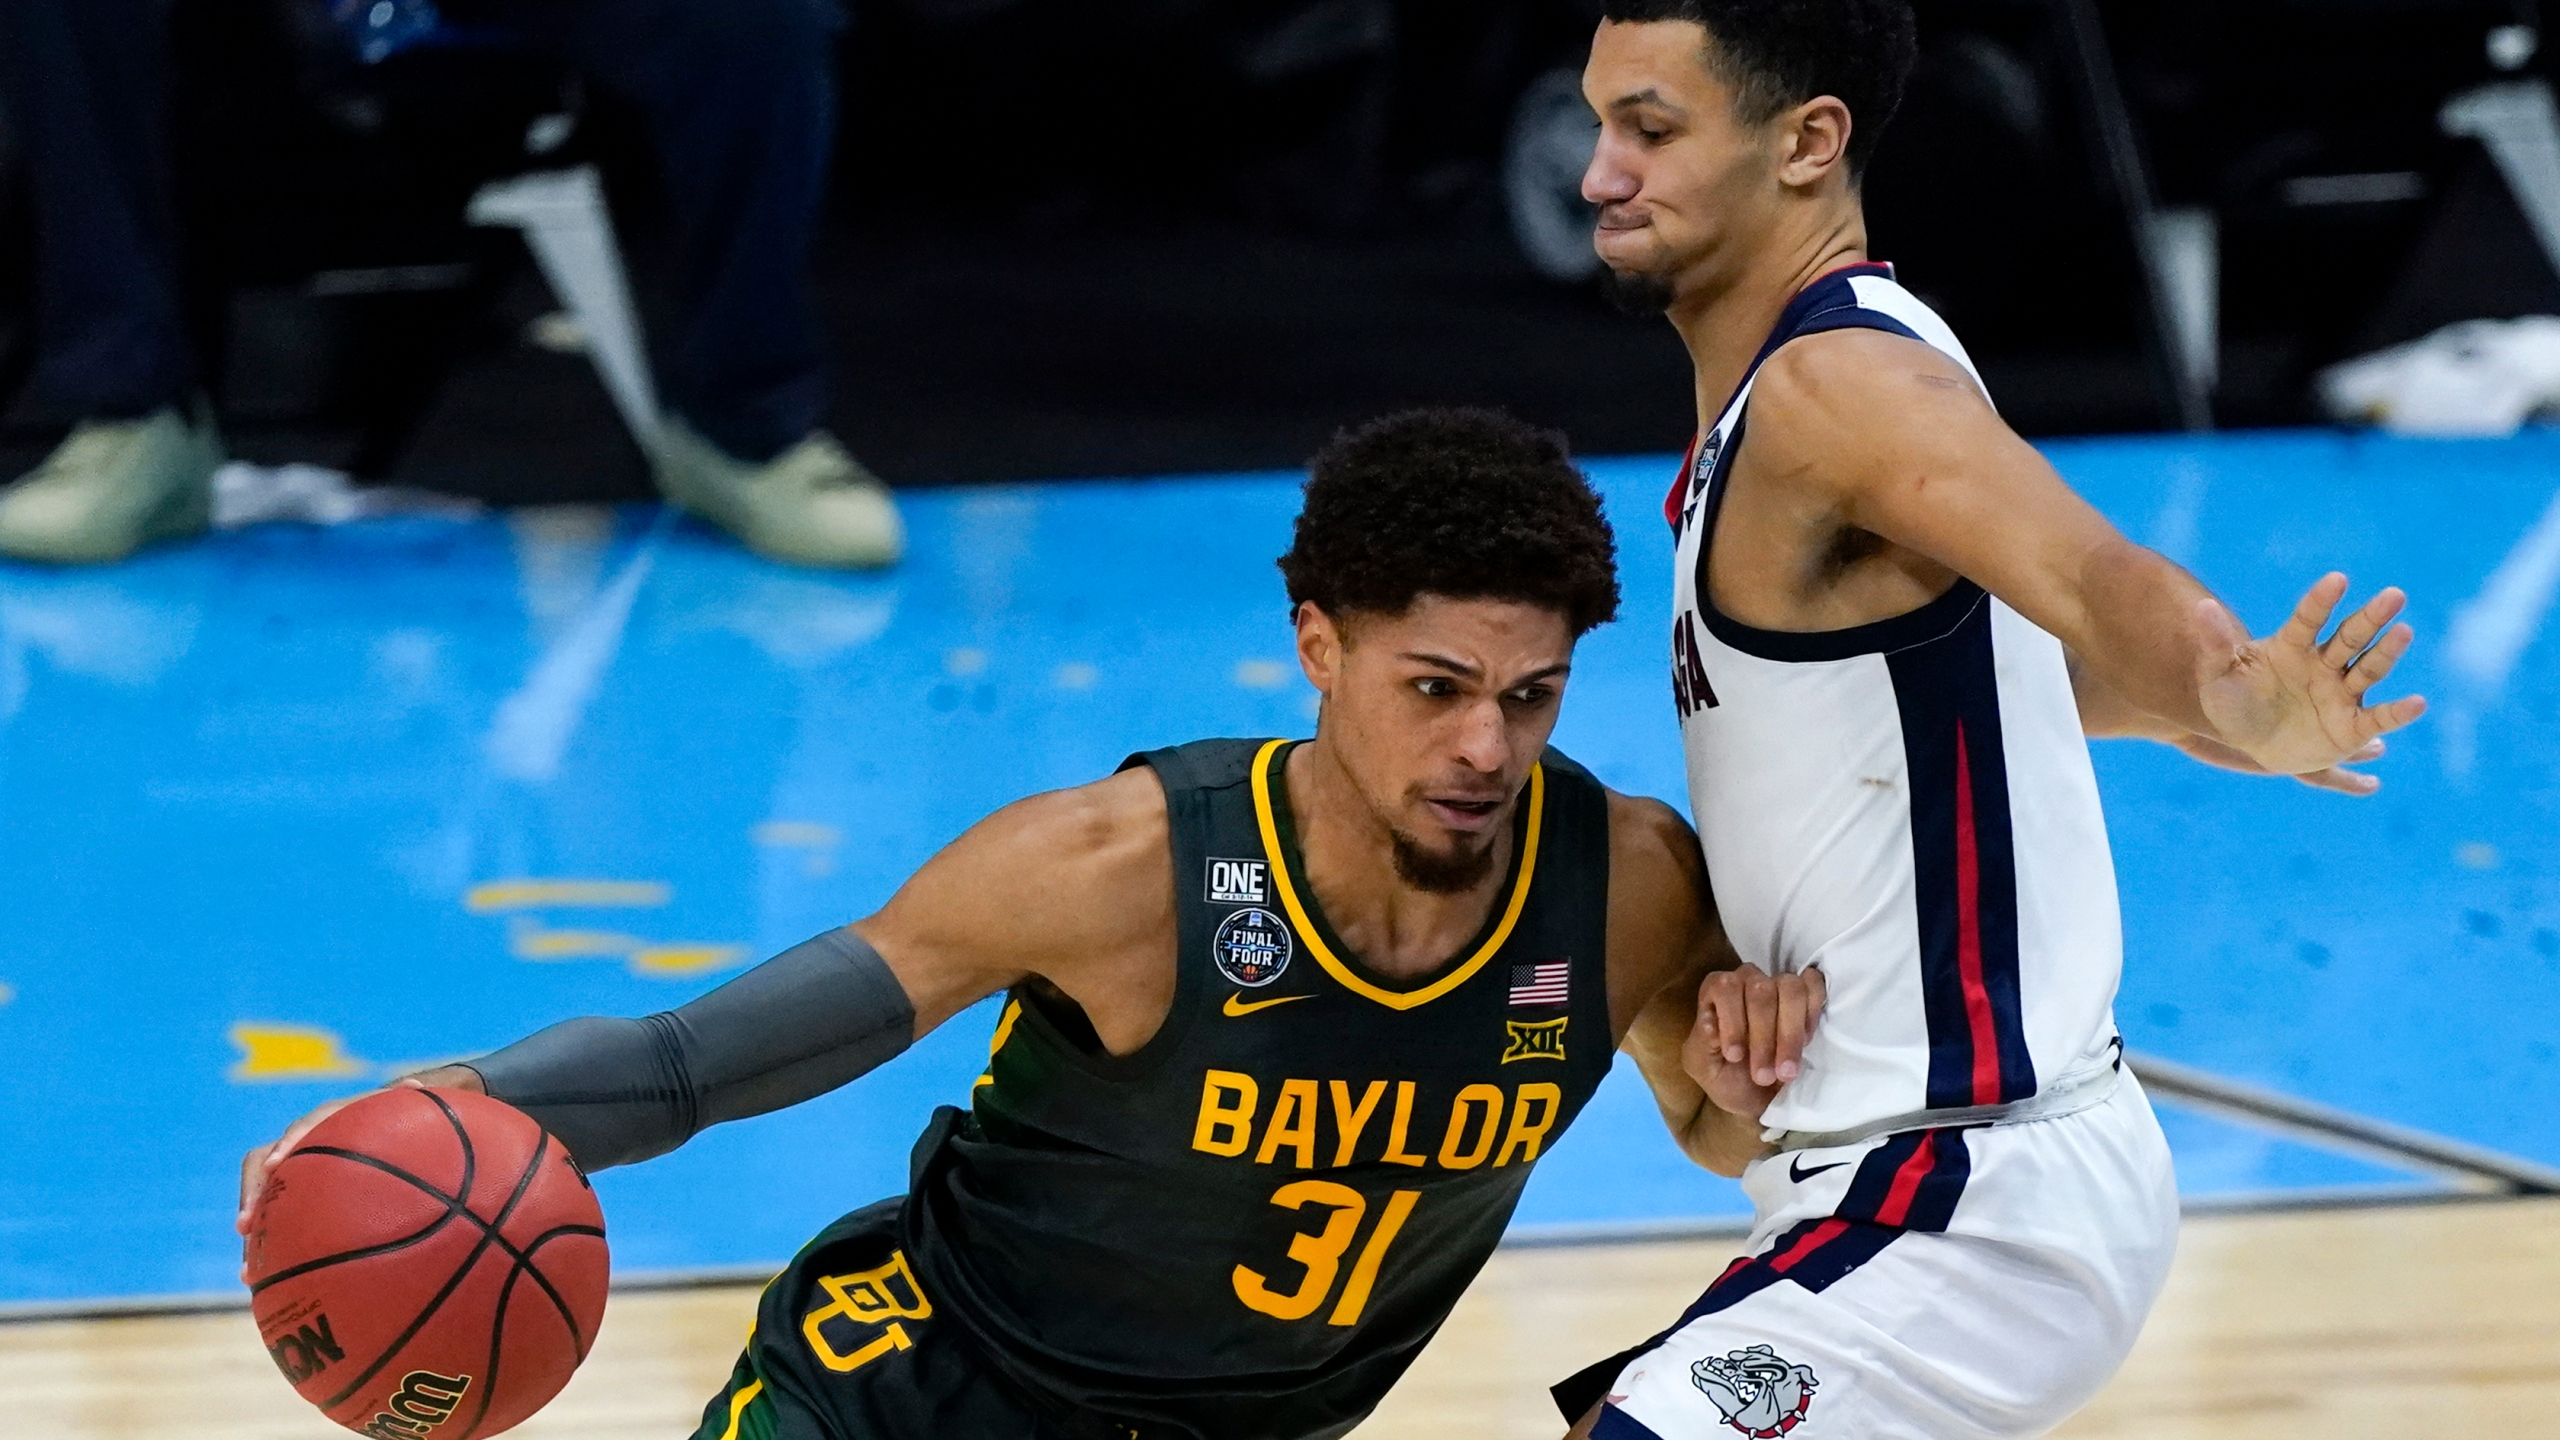 Baylor nearly flawless in title game rout of Gonzaga | WGN Radio 720 - Chicago's Very Own